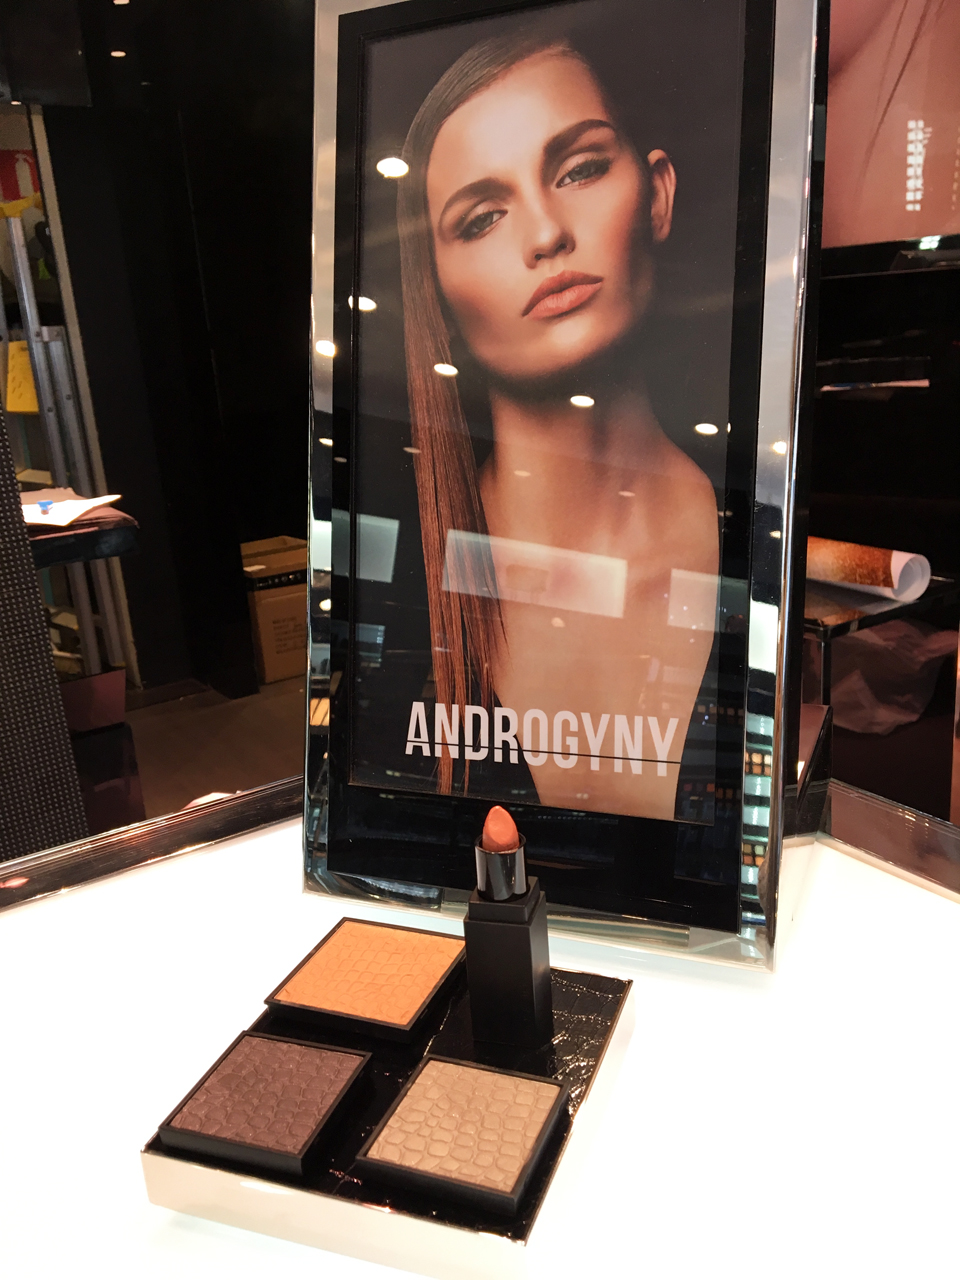 make-up-store-androgyny-collection